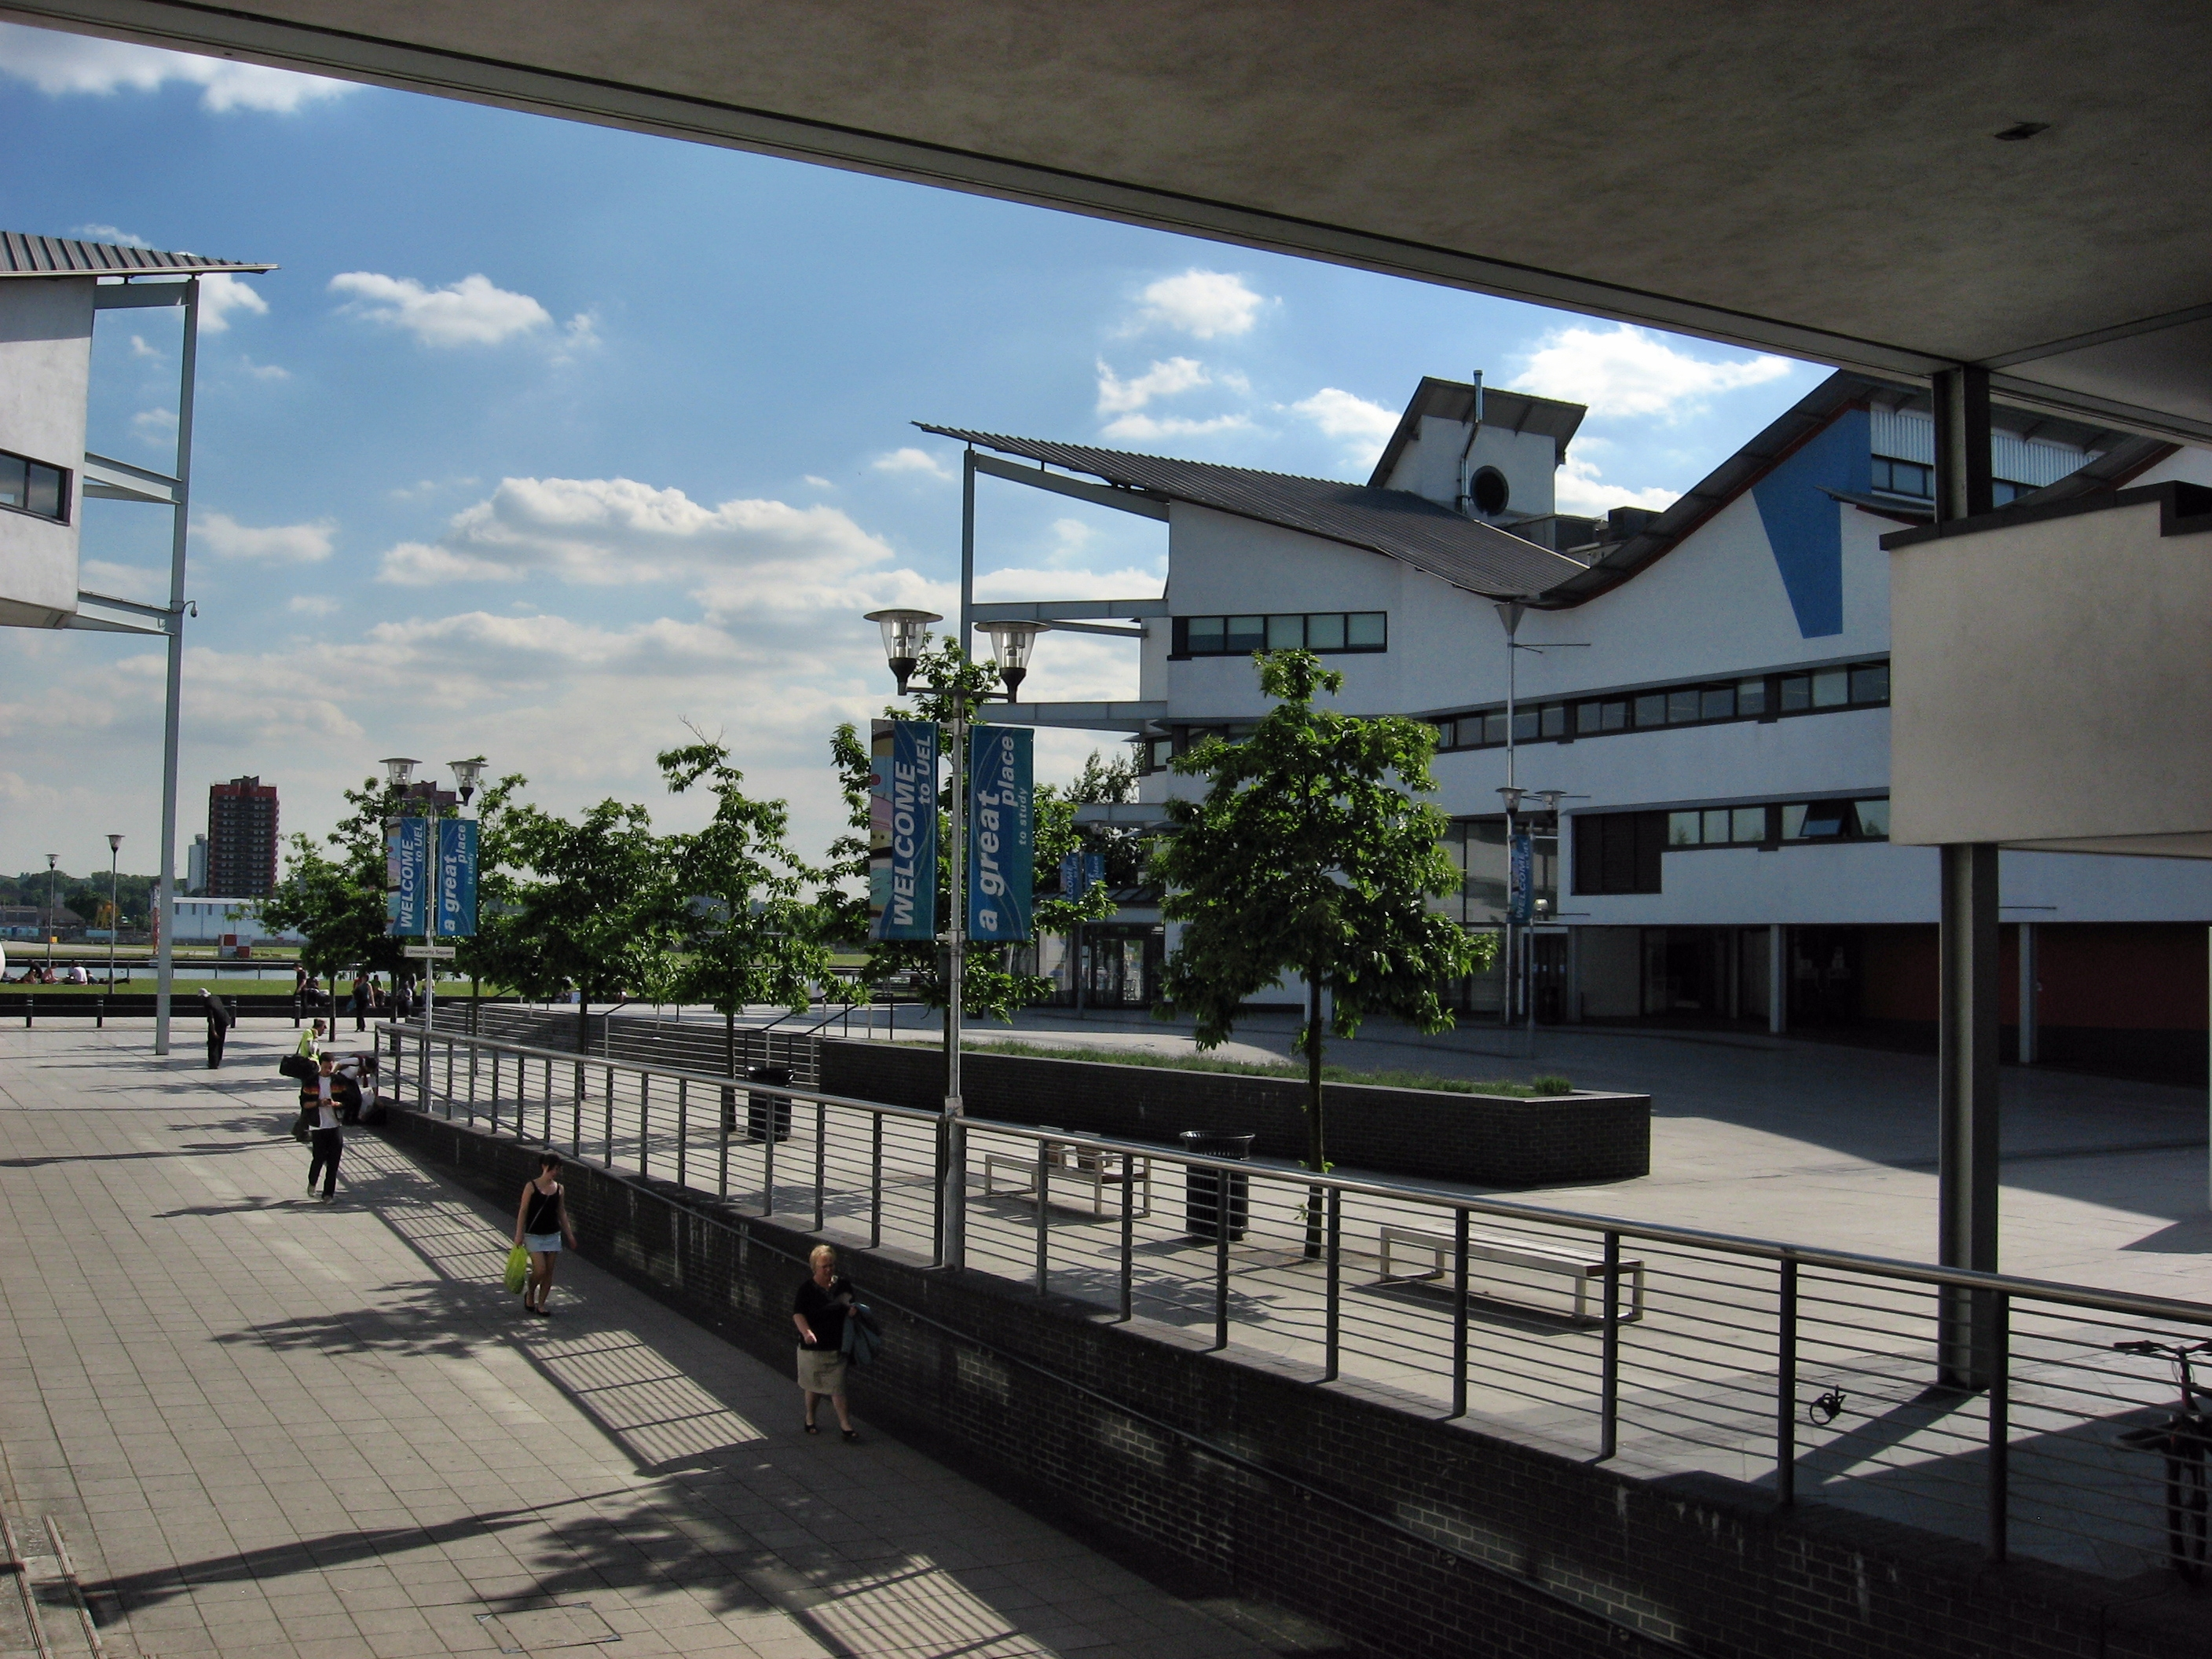 File:University of East London Docklands Campus.jpg - Wikimedia Commons